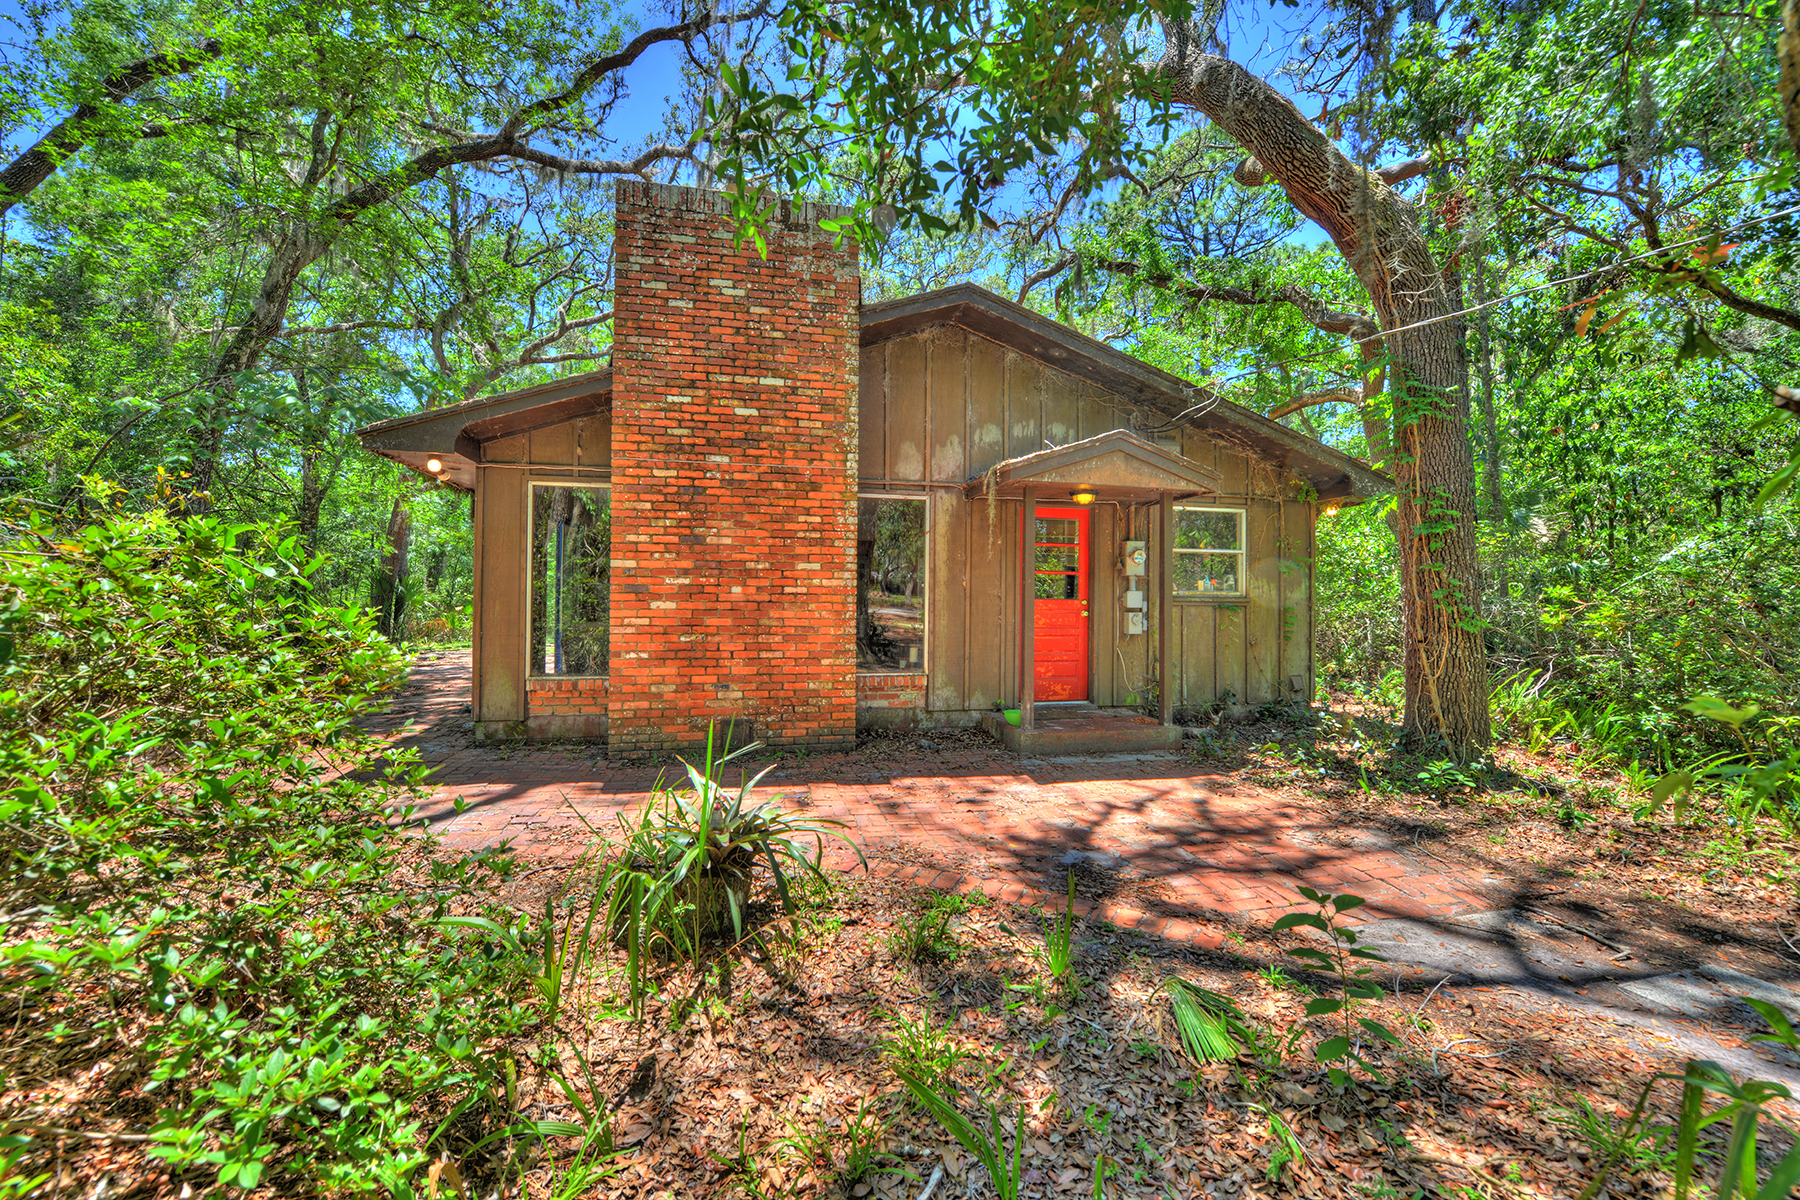 Additional photo for property listing at 1789 Taylor Rd , Port Orange, FL 32128 1789  Taylor Rd 0,  Port Orange, Florida 32128 United States